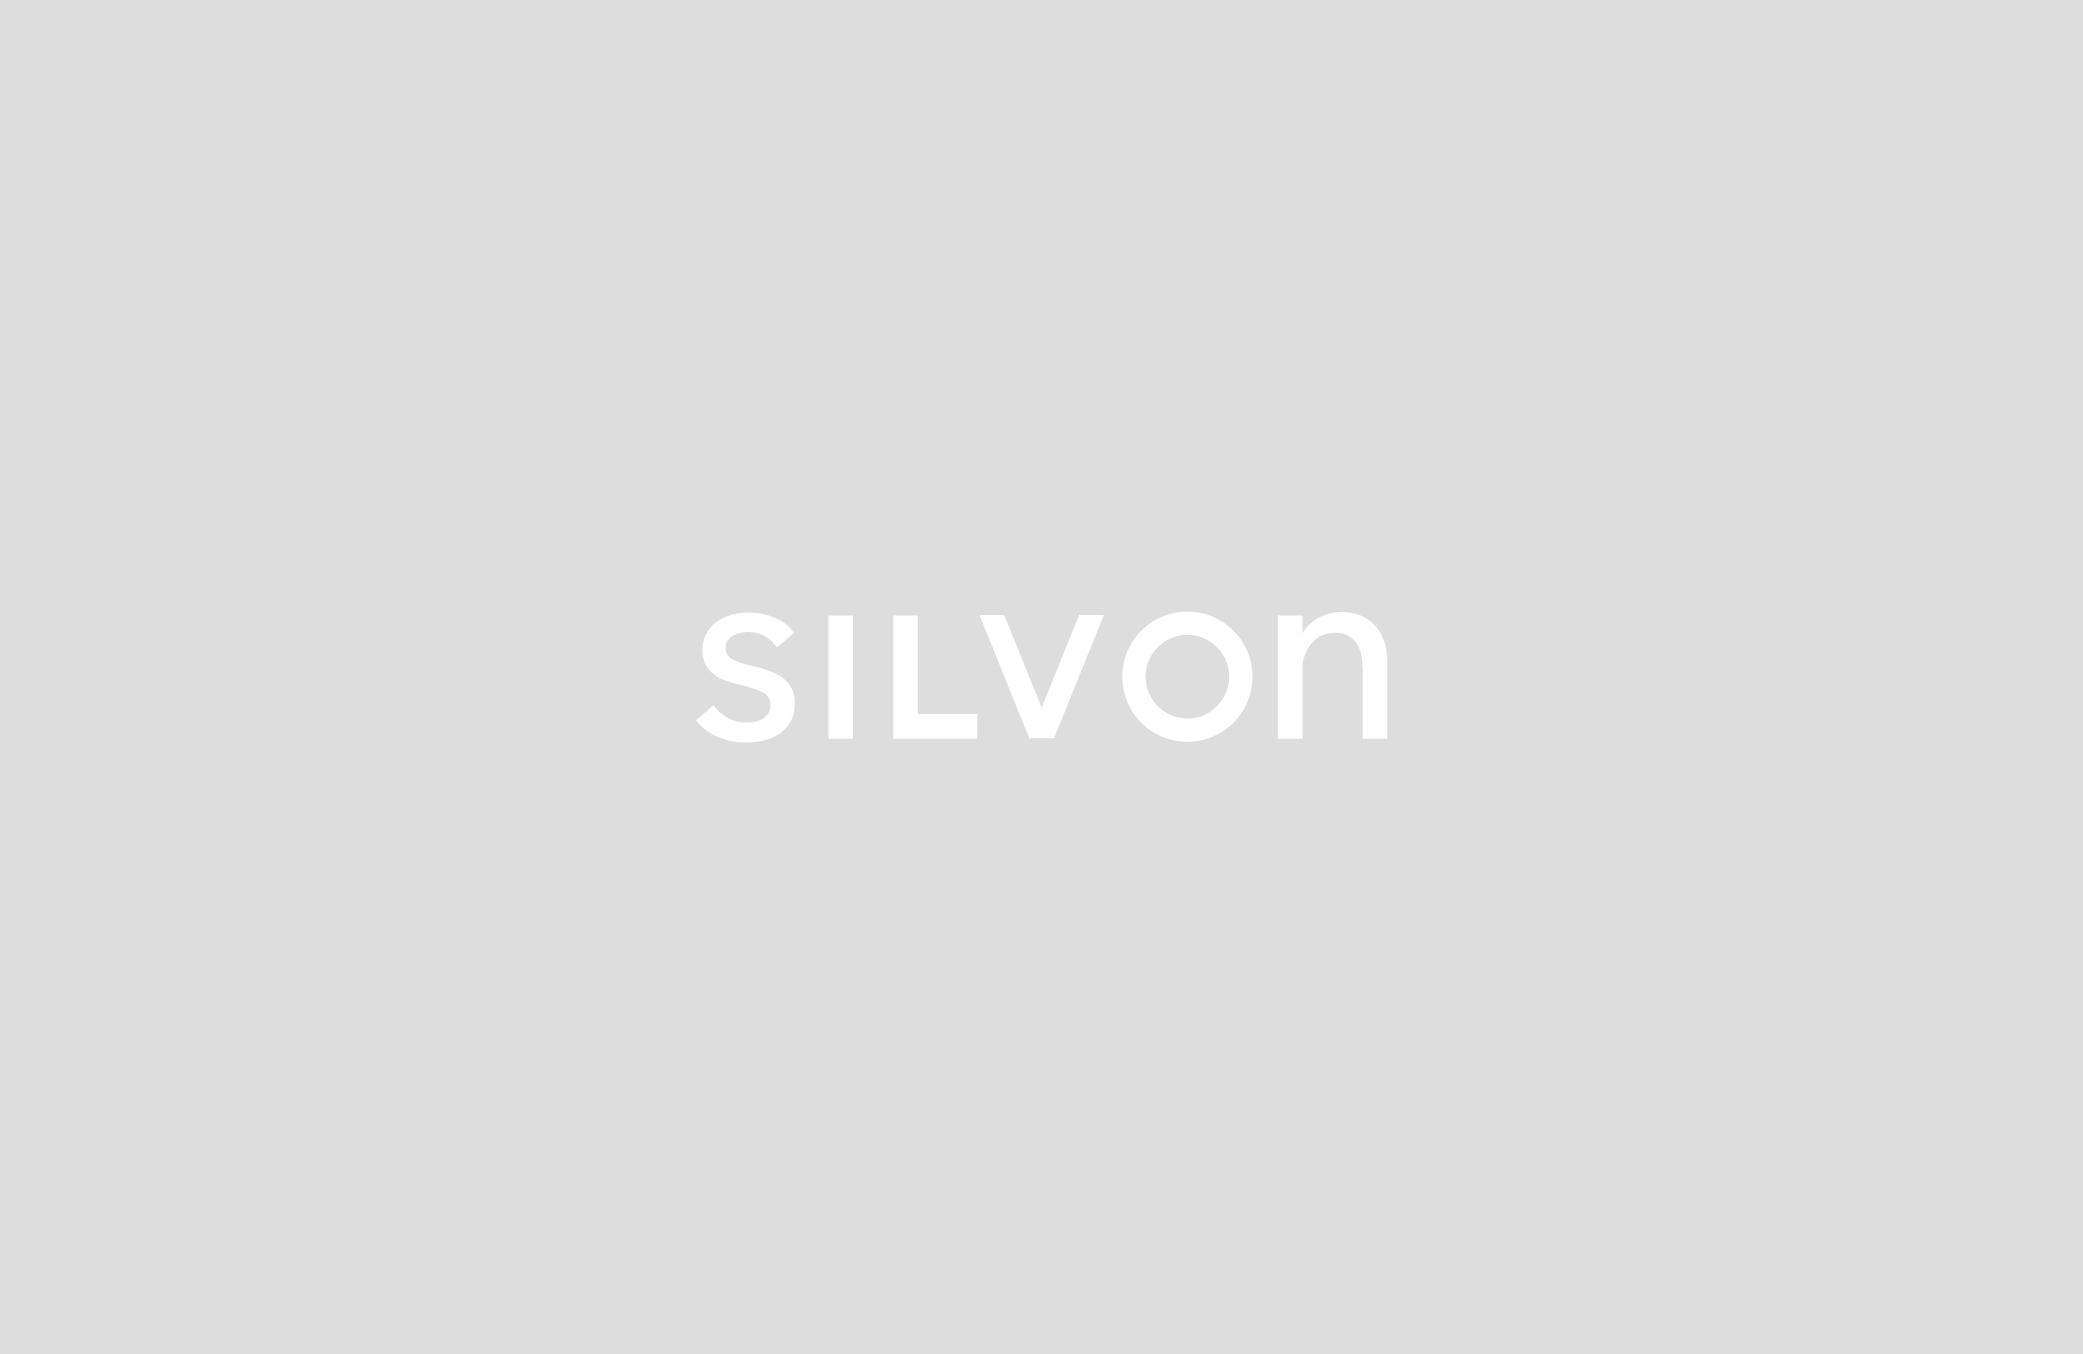 Silvon Press Image